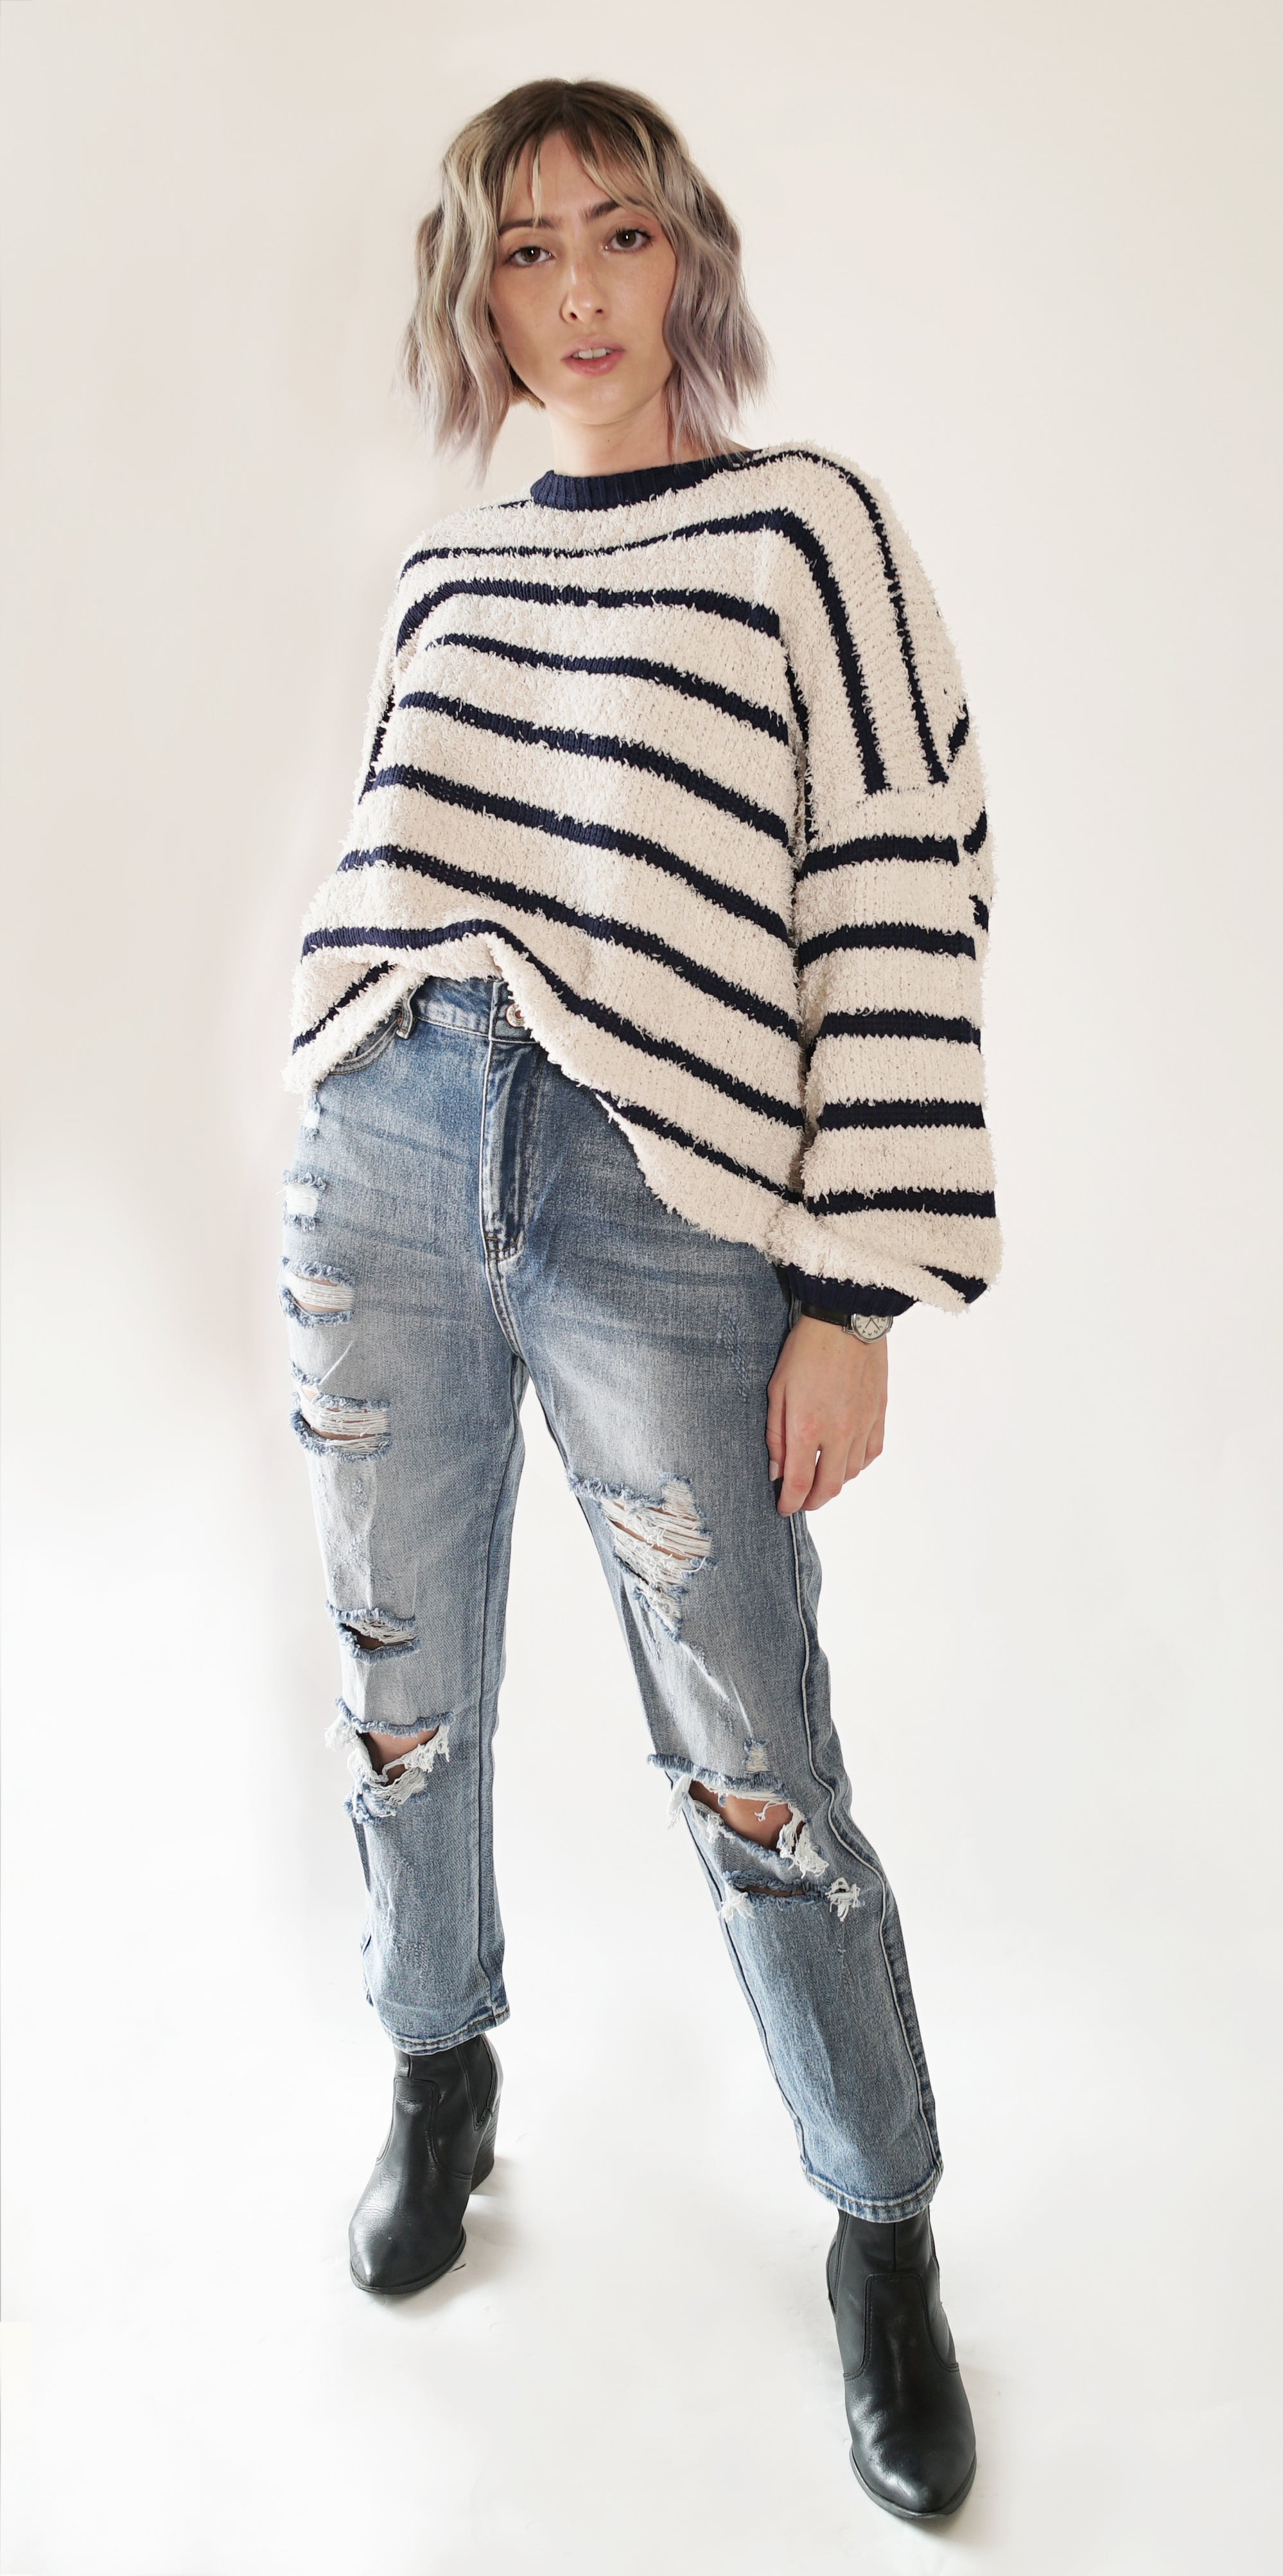 Fading Distressed Holes Crop Jeans